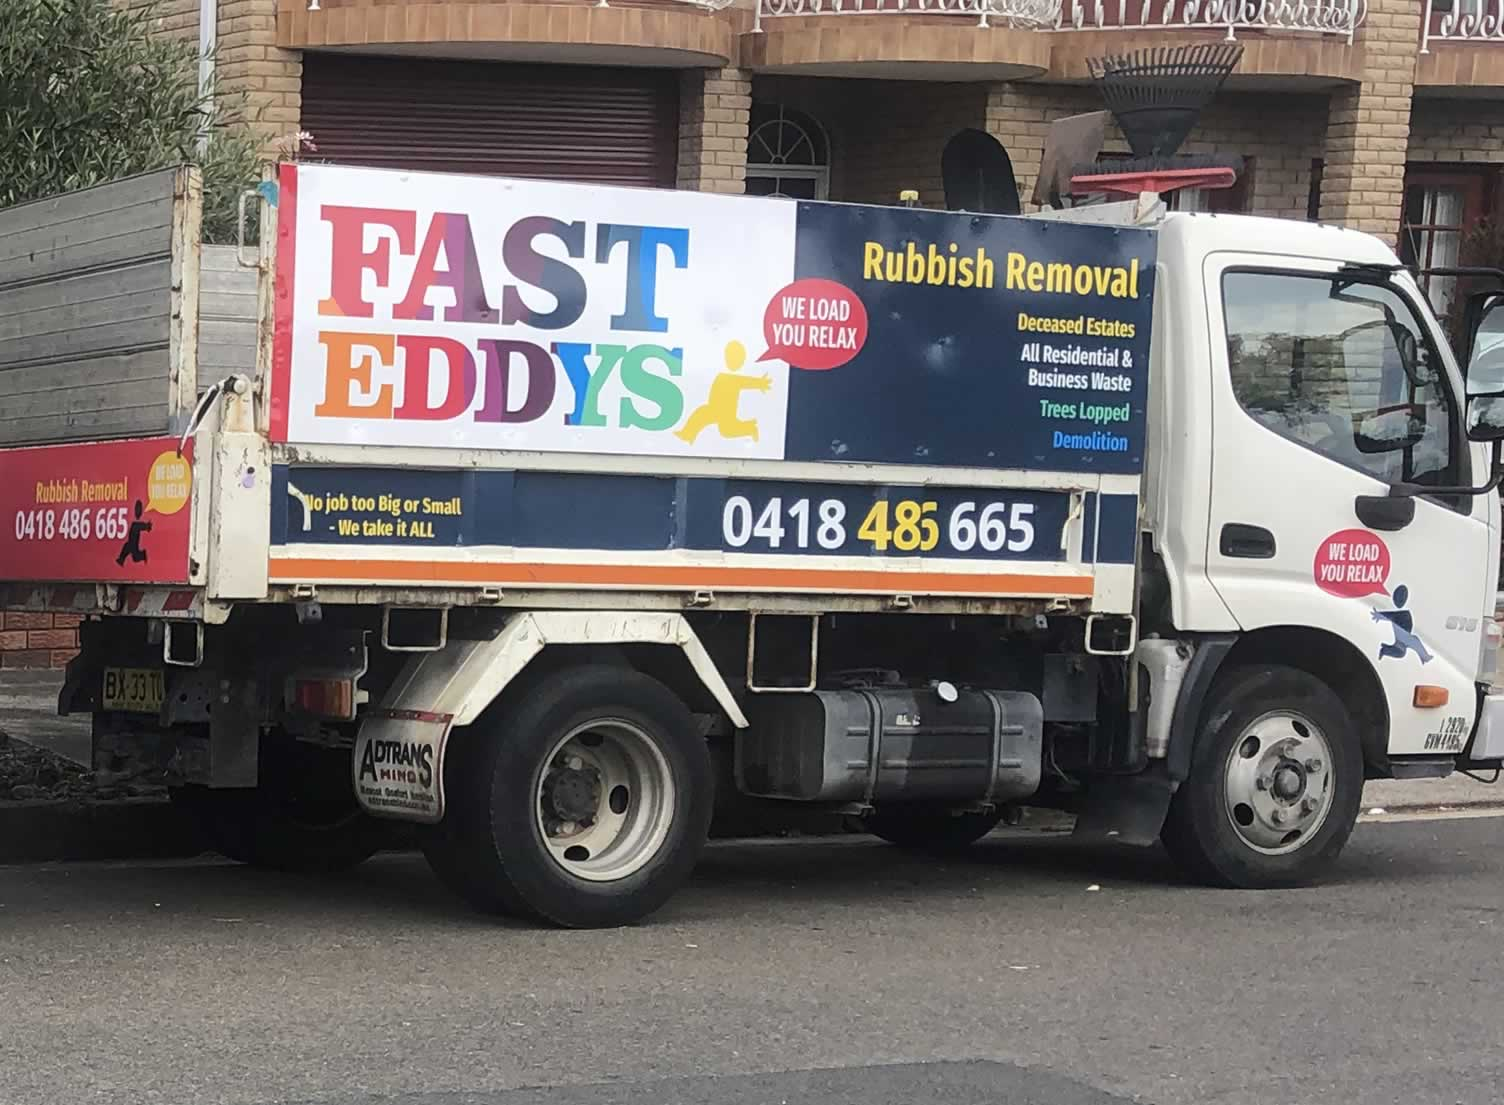 Do The Right Thing - Don't contribute to Illegal Dumping-fast-eddys-sydney-rubbish-removal-lr